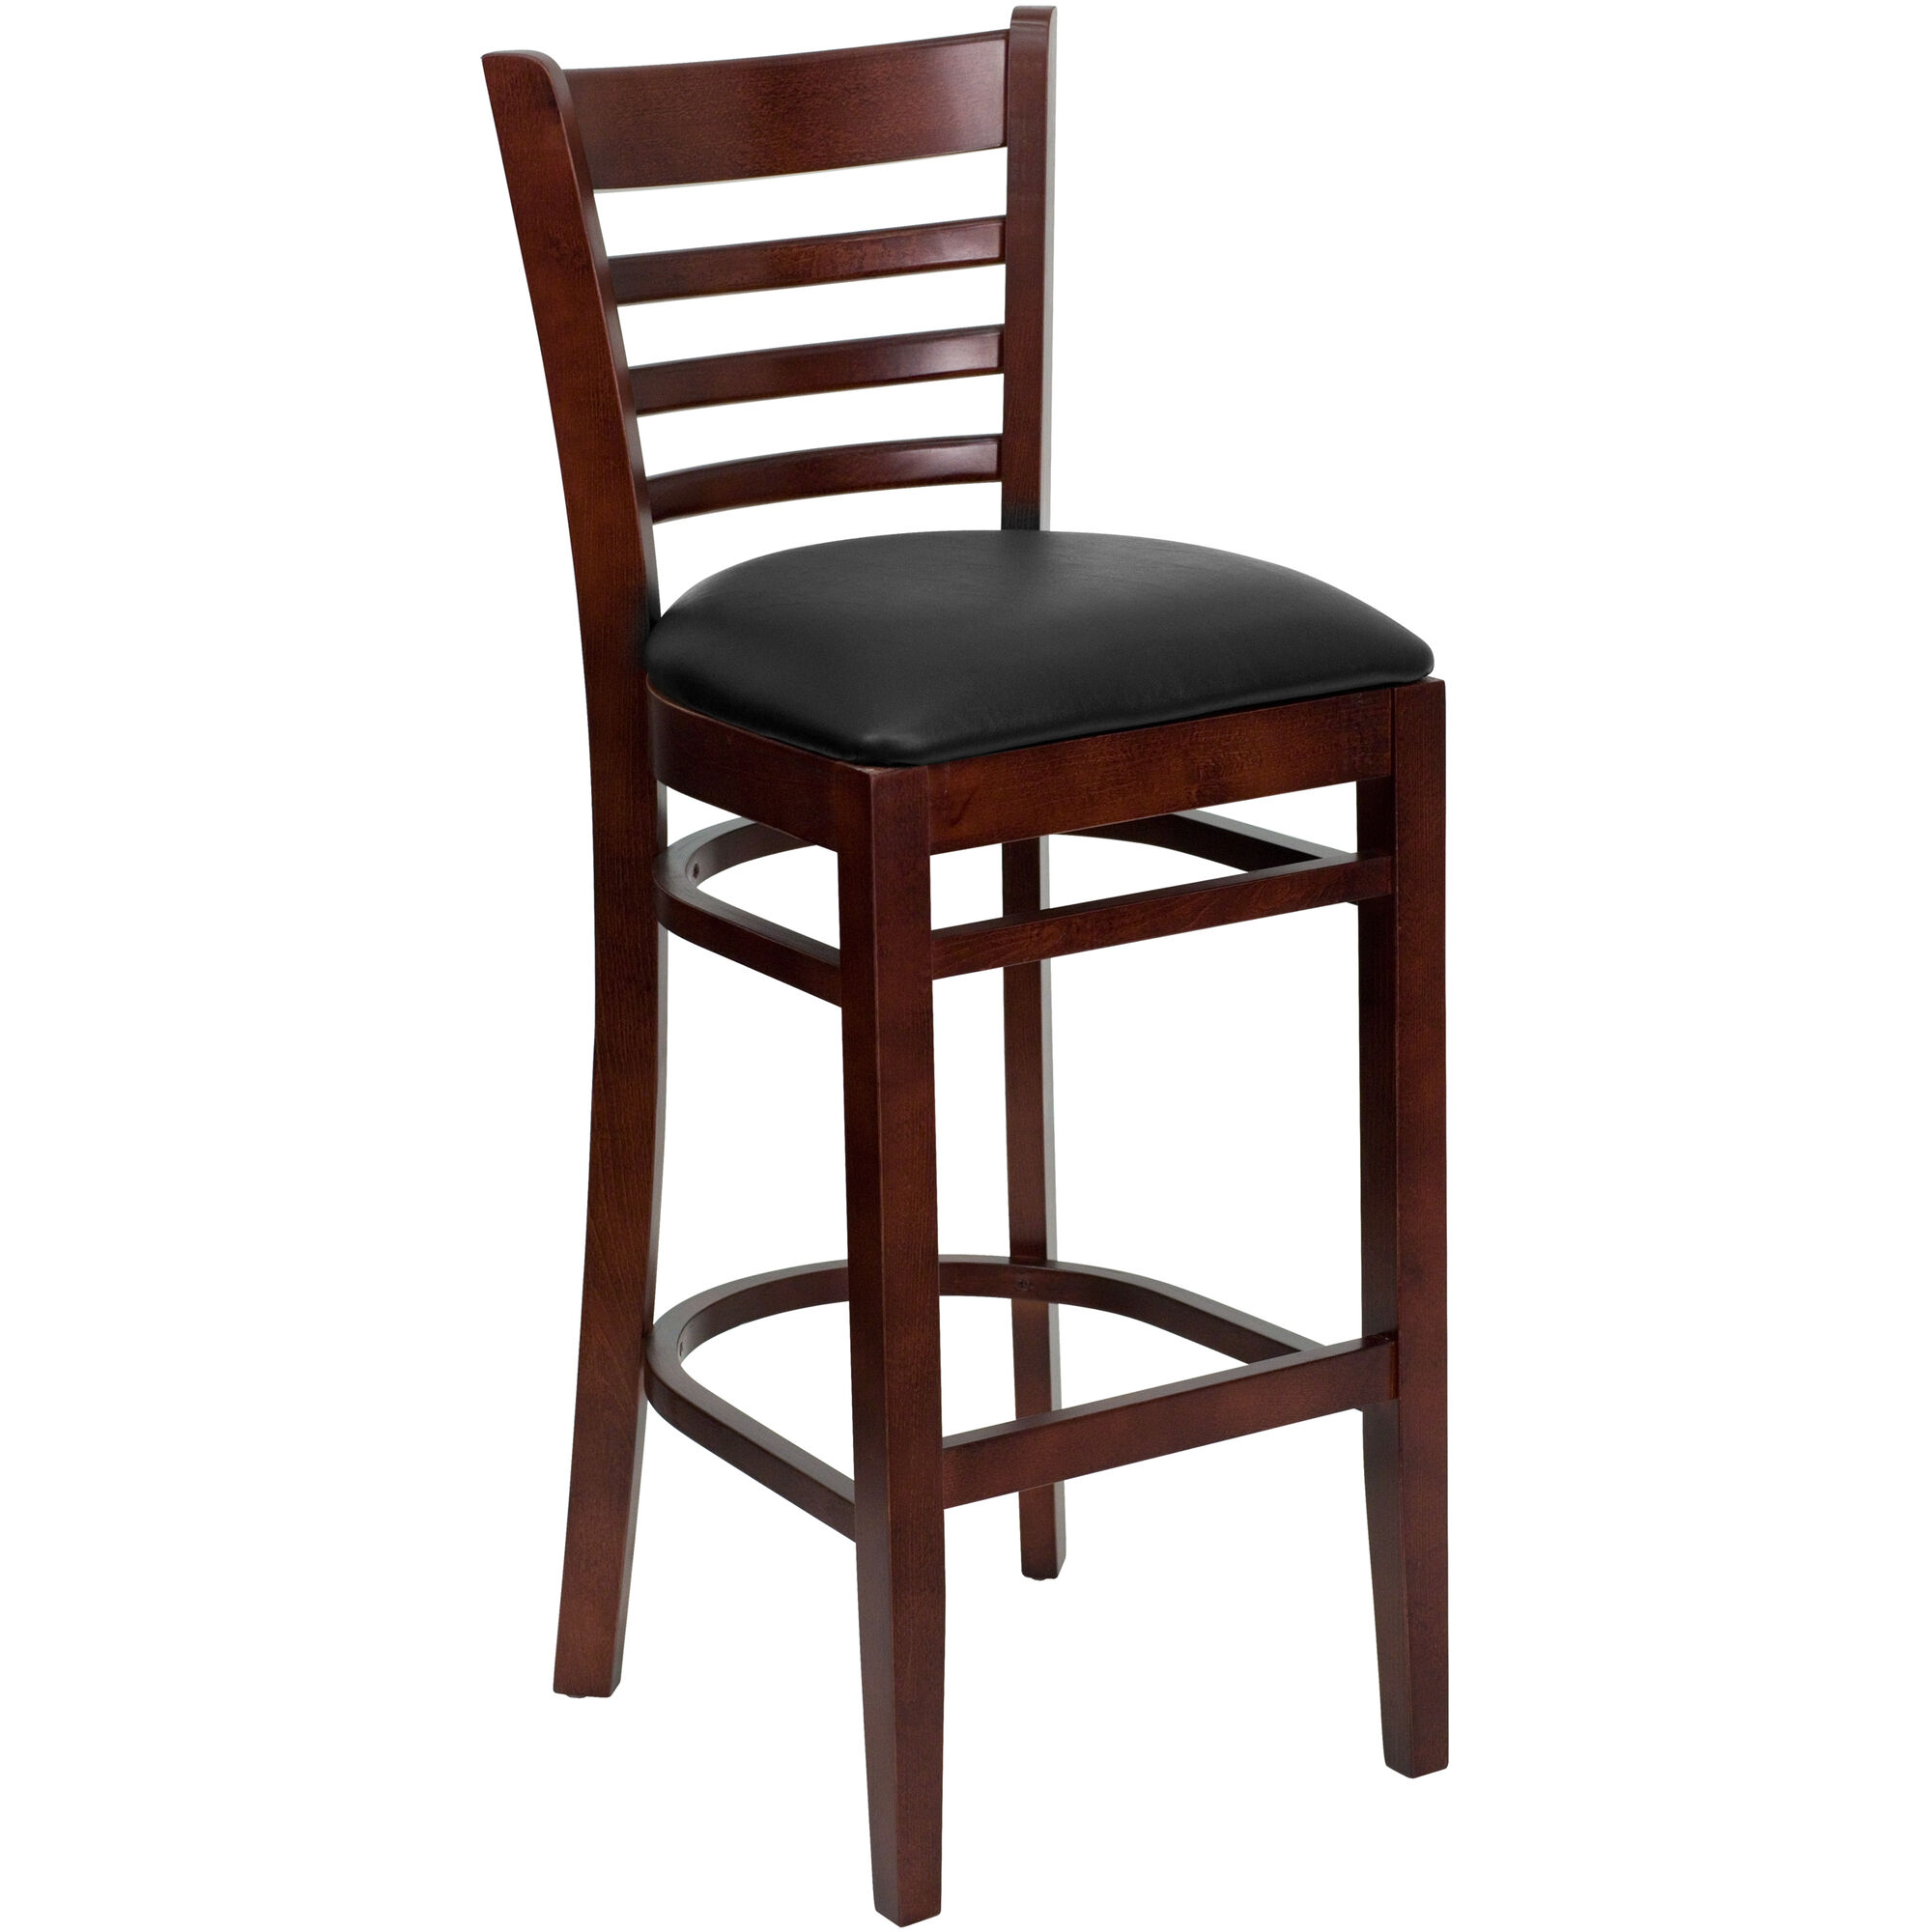 6ff03a97cde Mahogany Finished Ladder Back Wooden Restaurant Barstool with Black Vinyl  Seat